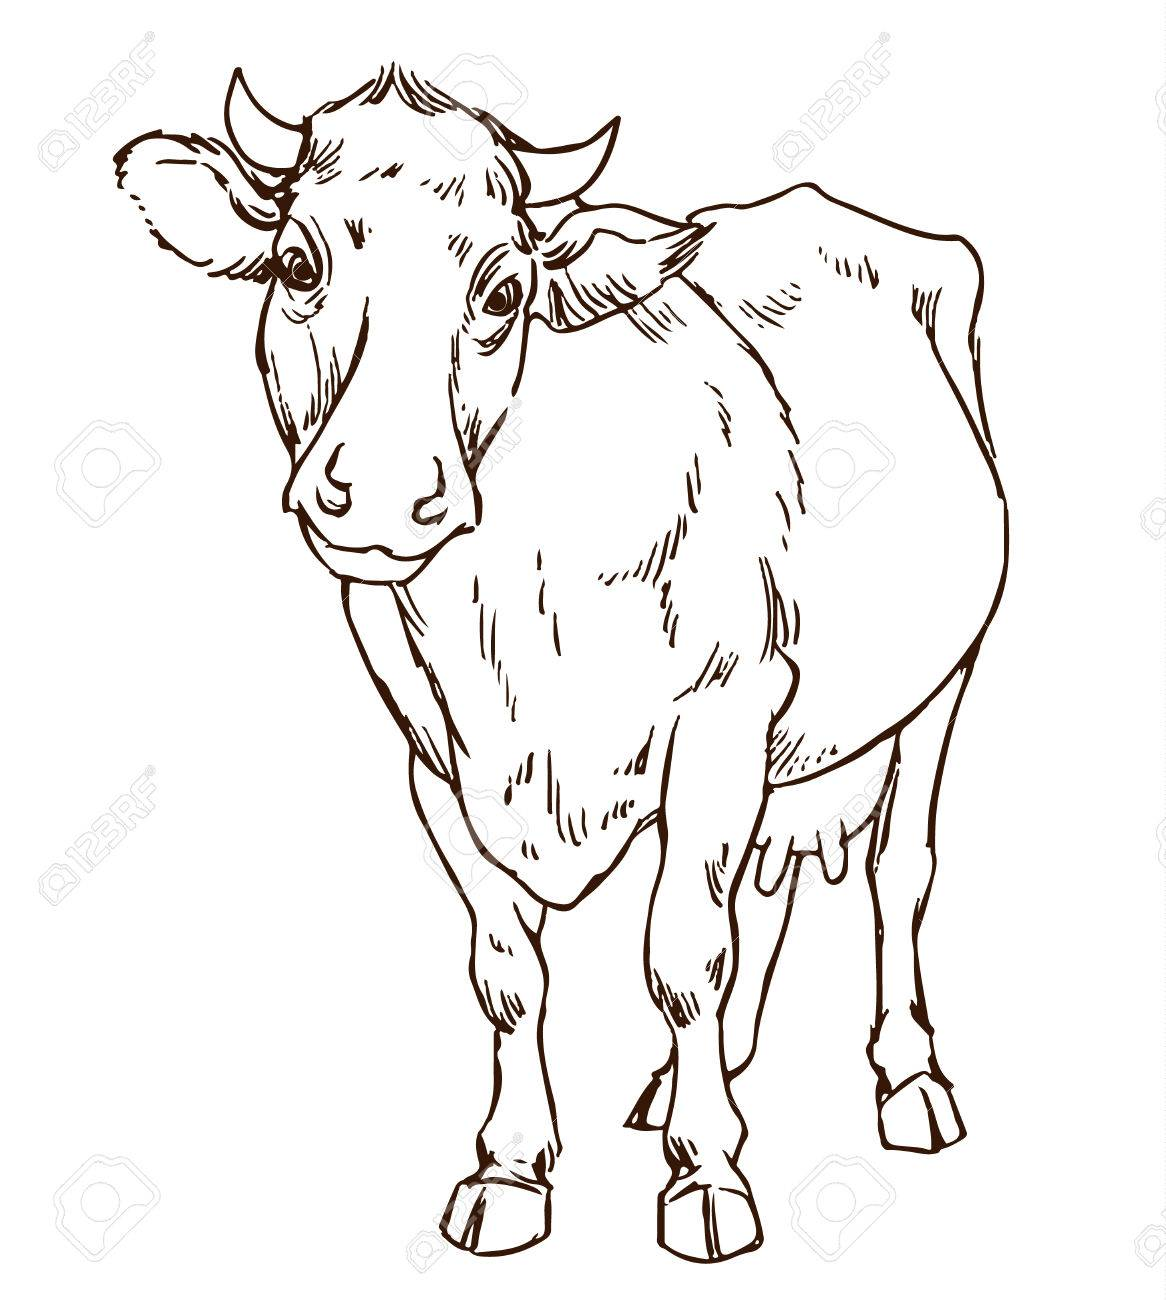 Cute Naturalistic Cow Line Drawing Hand Drawing Sketch Stock Vector 51352820